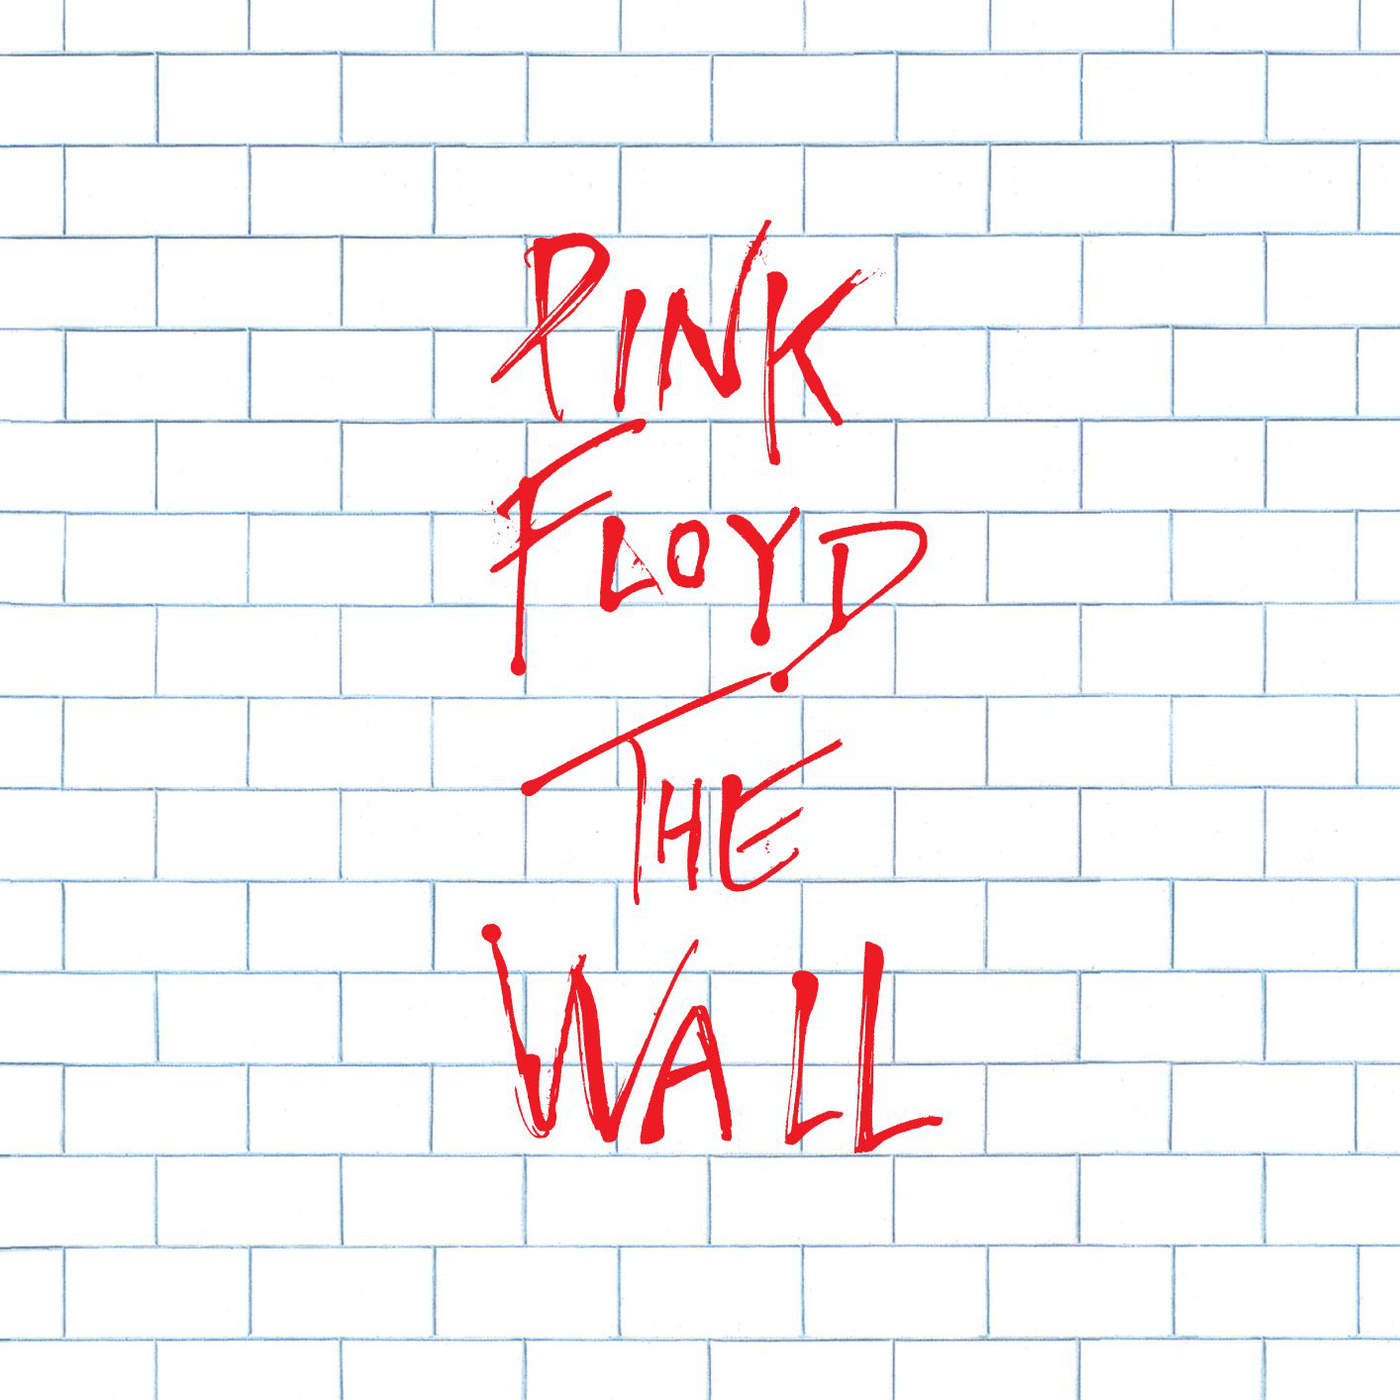 Another Brick In the Wall, Pt. 2 by Pink Floyd